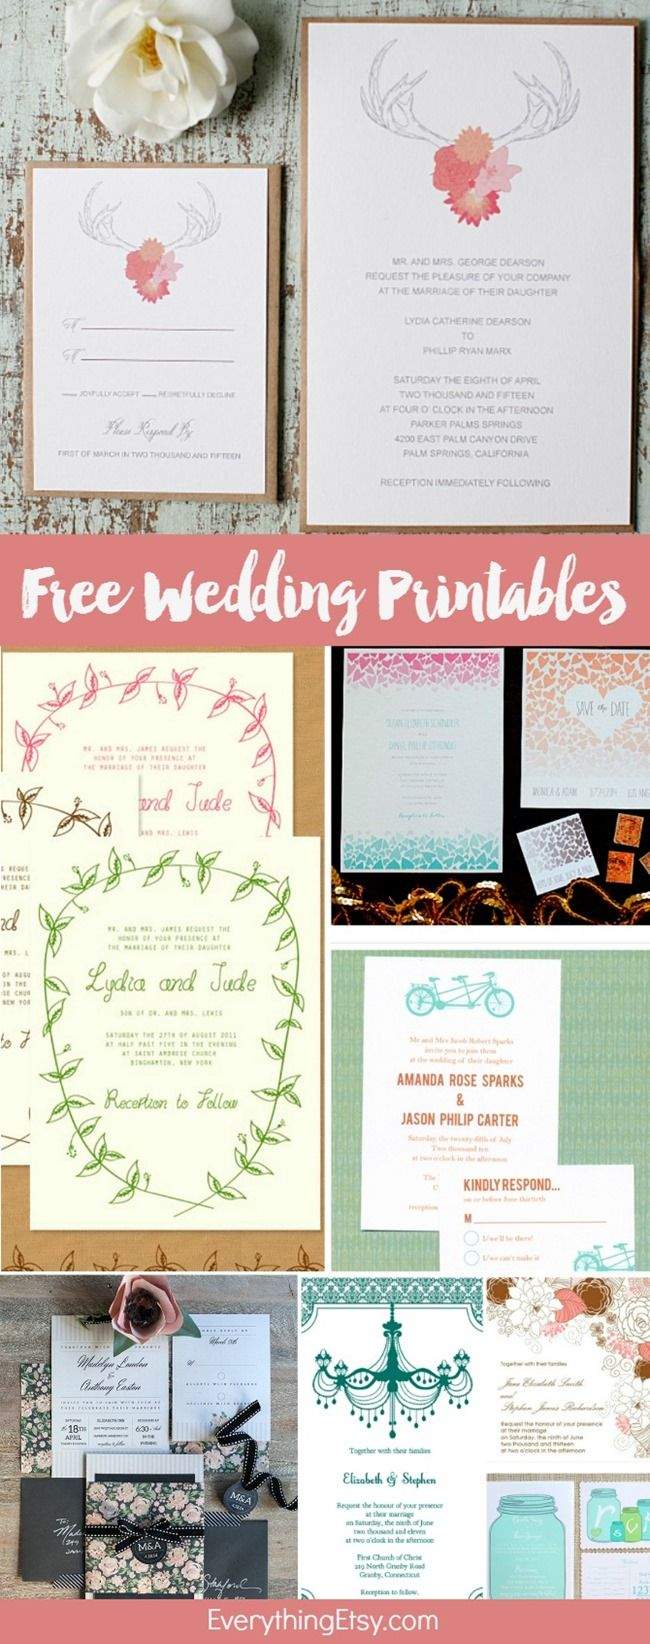 wedding planning checklist spreadsheet free%0A Free Wedding Printables u    DIY Invitations